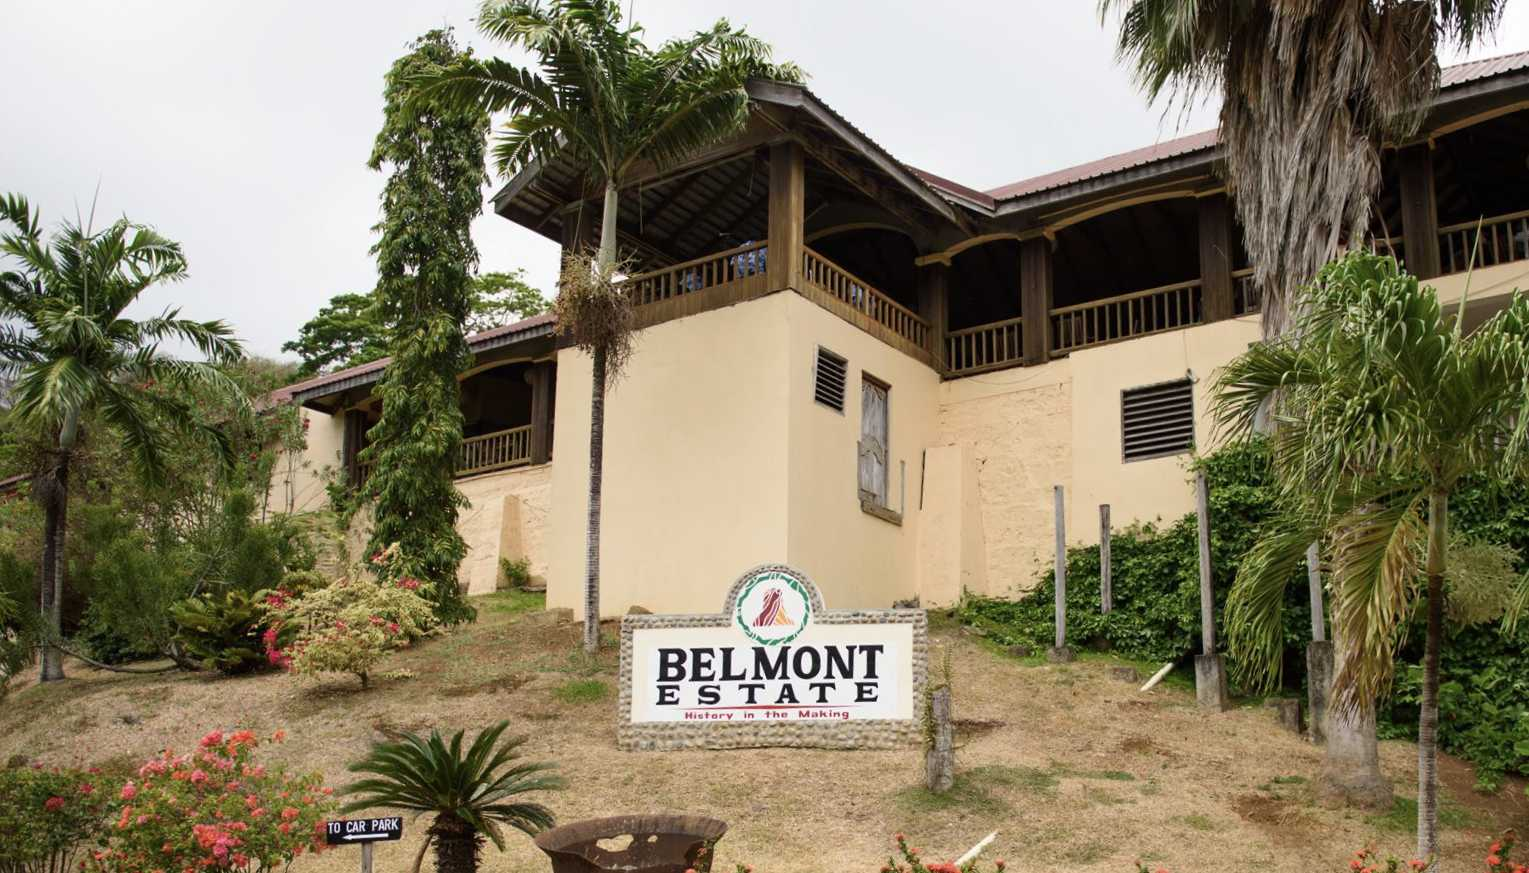 Belmont Estate building in Grenada